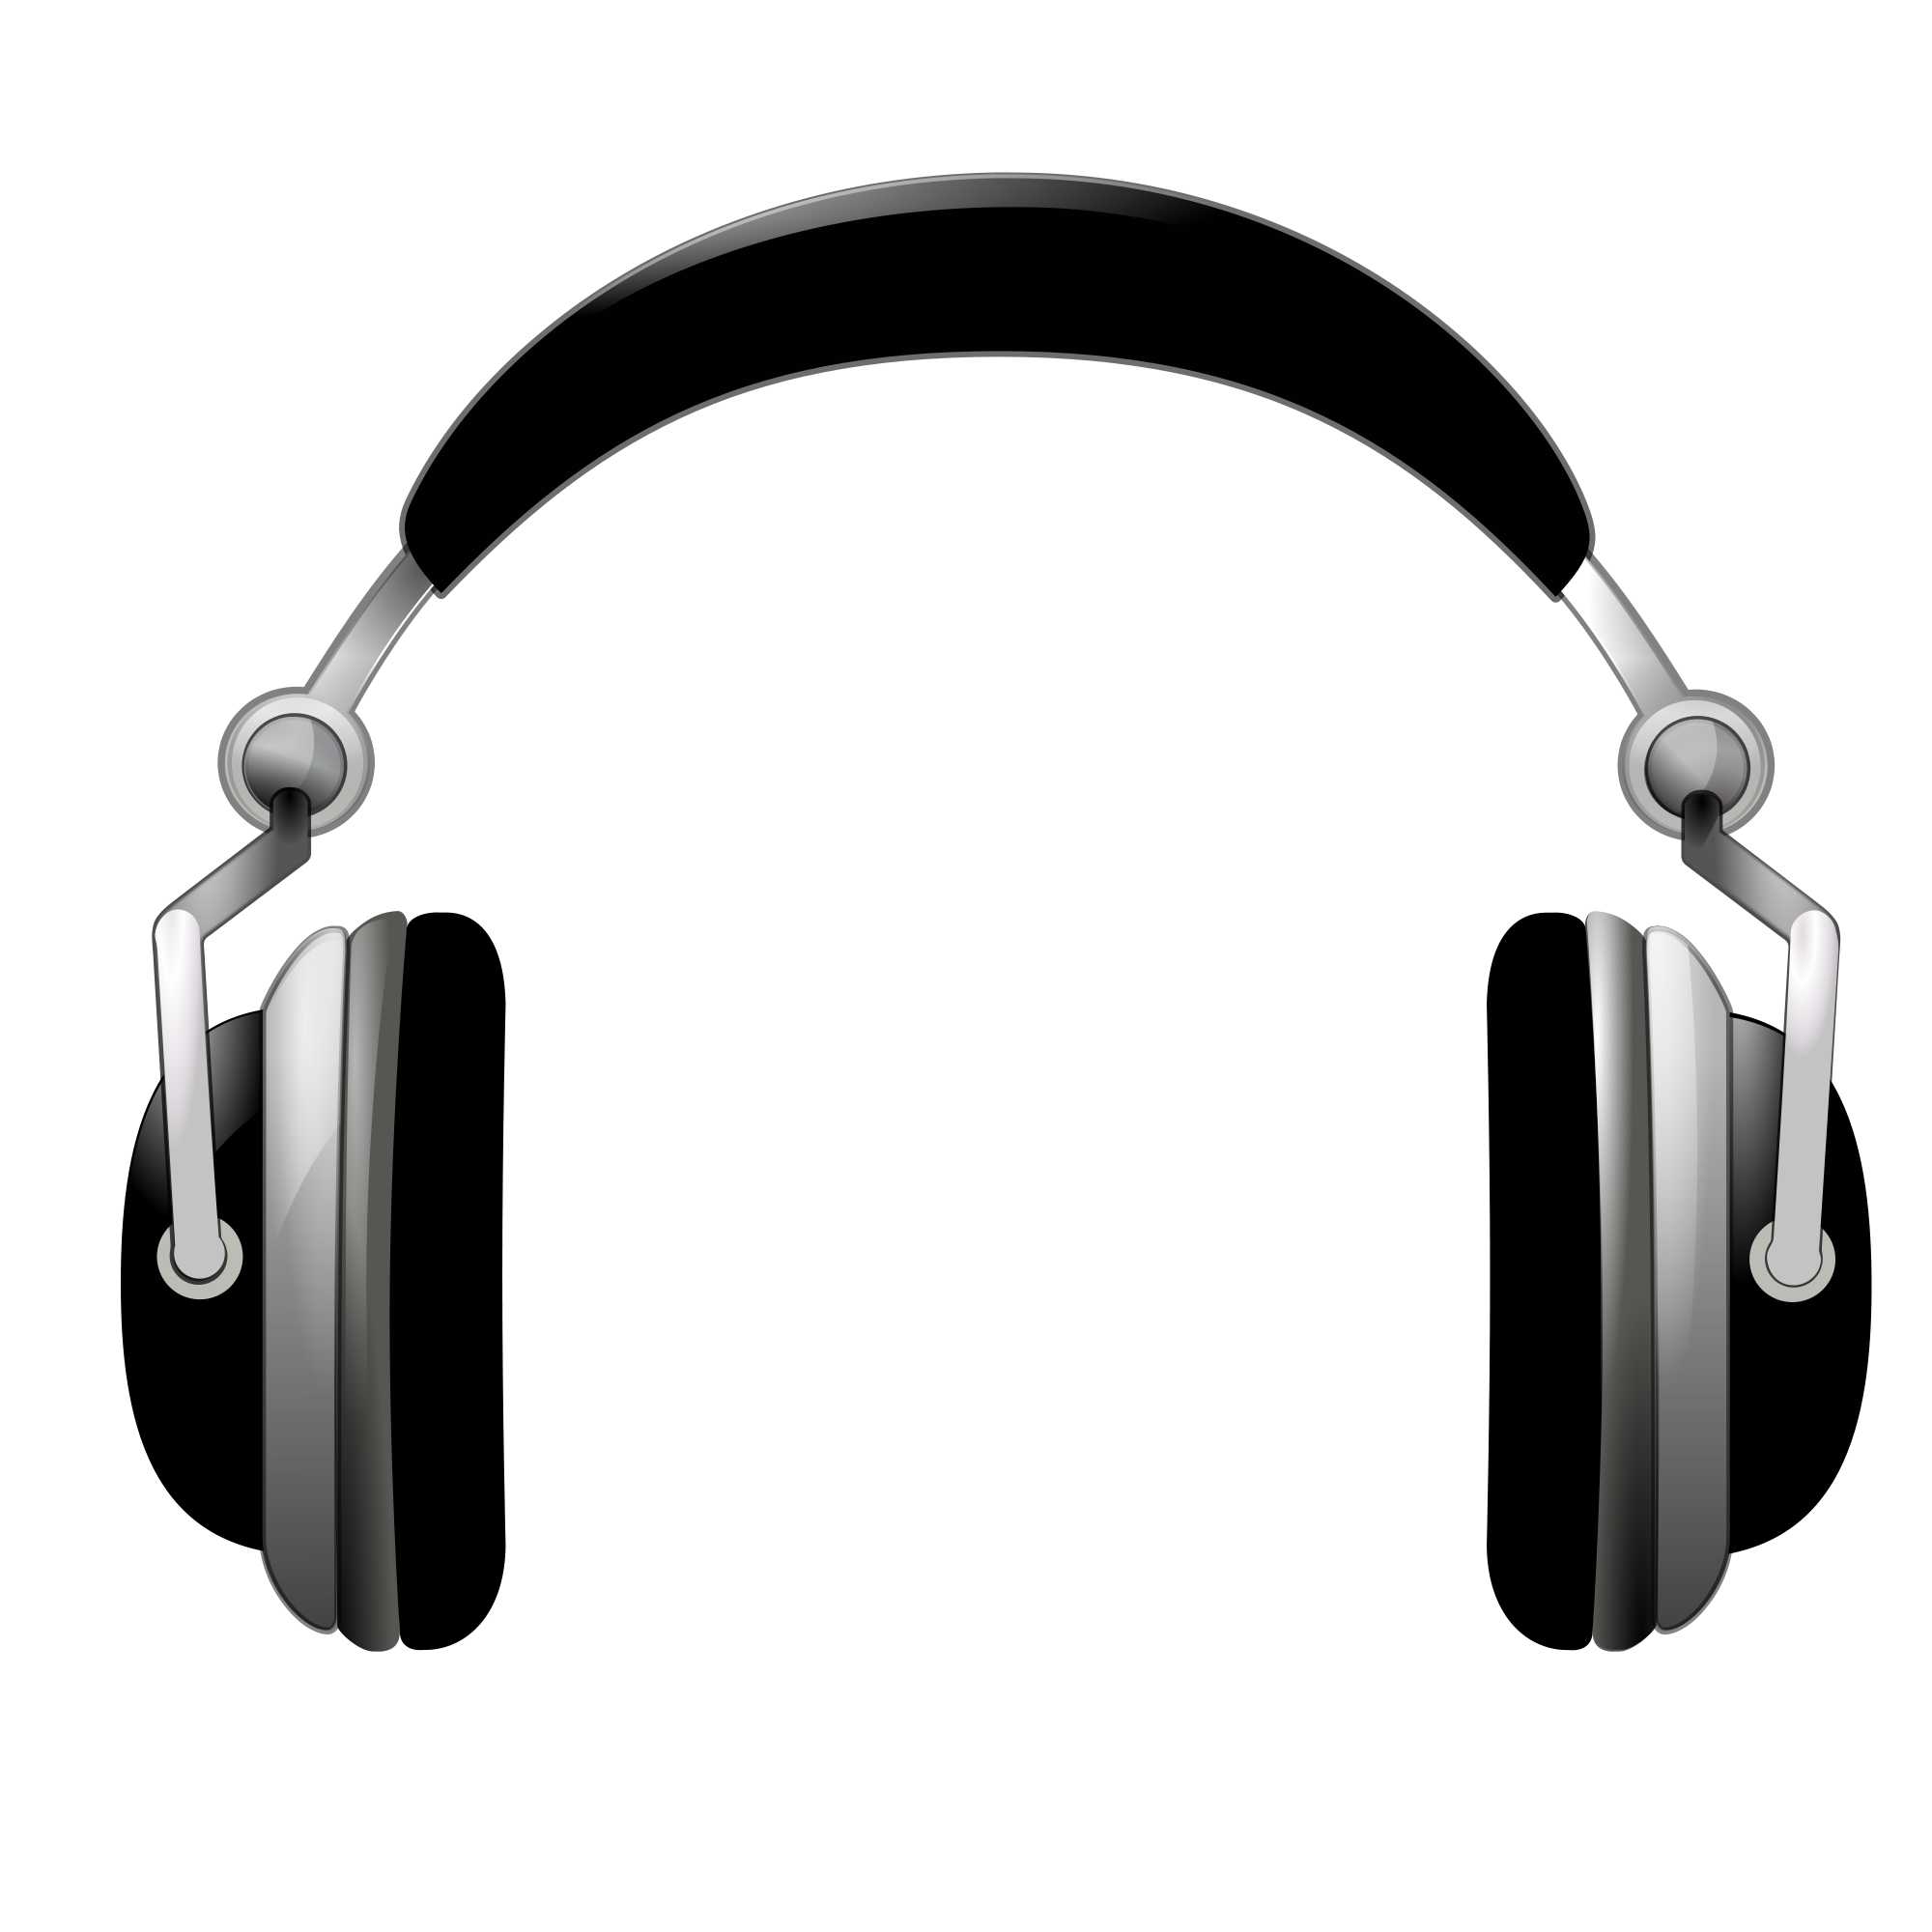 Headphones Picture PNG Image